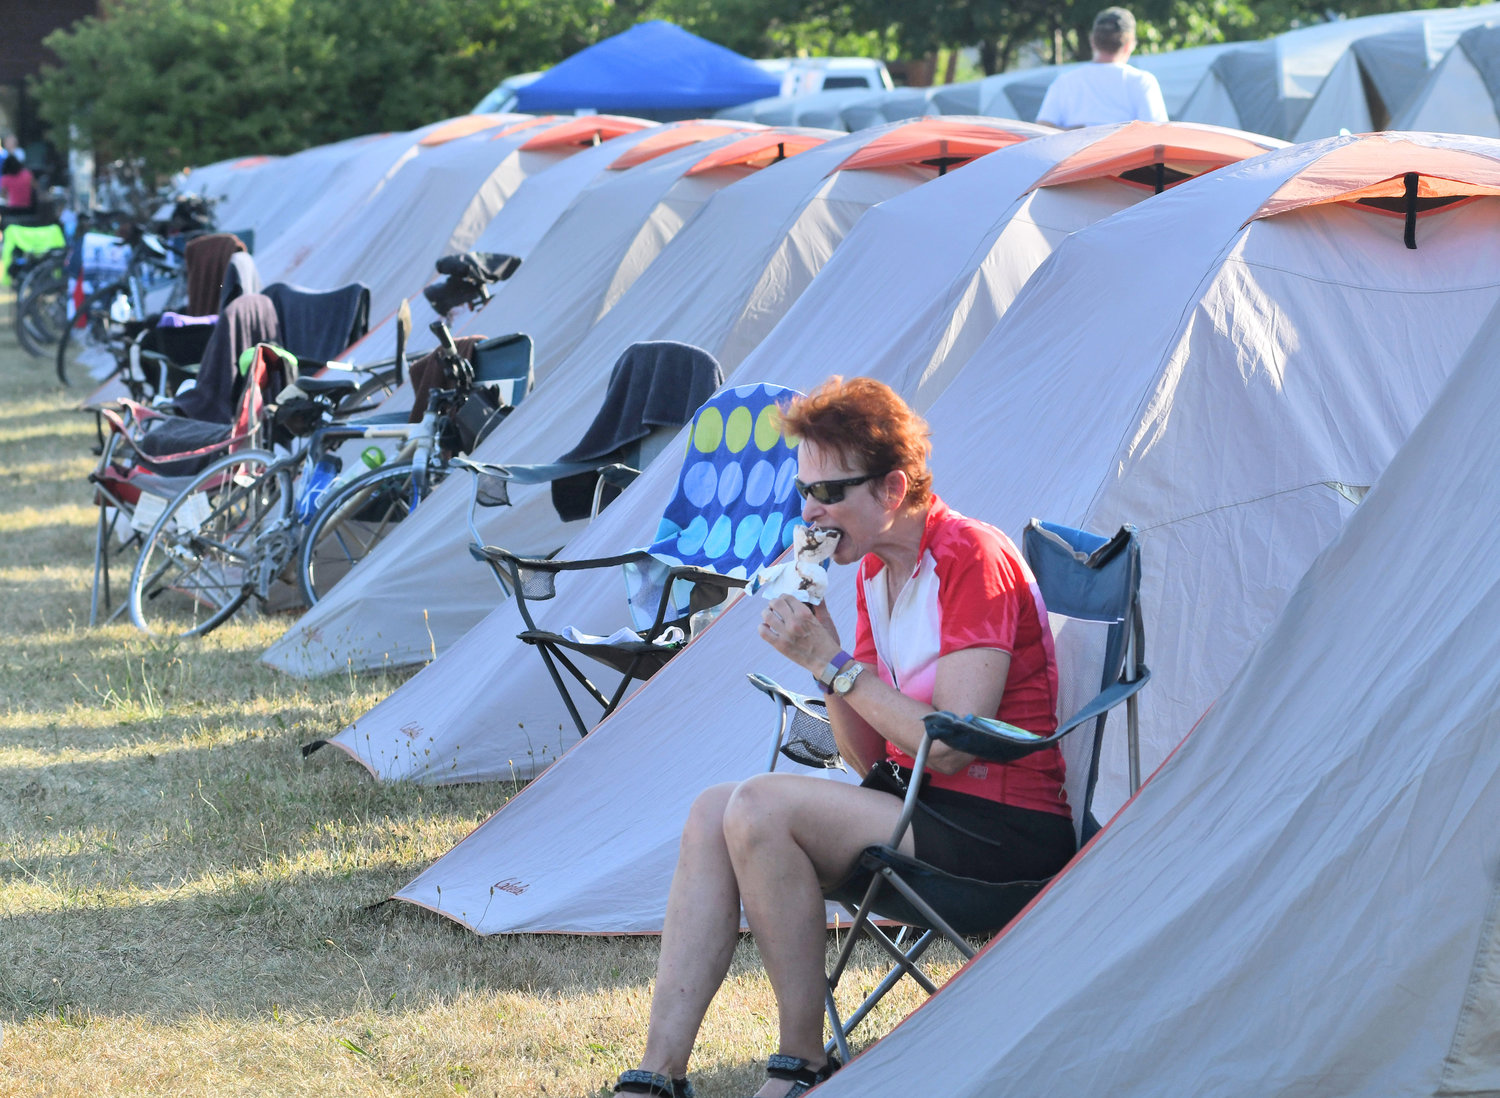 PIT STOP — Enolla Nelson from Raleigh, N.C., enjoys ice cream after a hot day on her bike, as riders during the 2018 Cycle the Erie Canal Bike Tour spent a night in Rome. More than 700 riders are expected to camp out on the Fort Stanwix lawn in this year's event on Thursday.